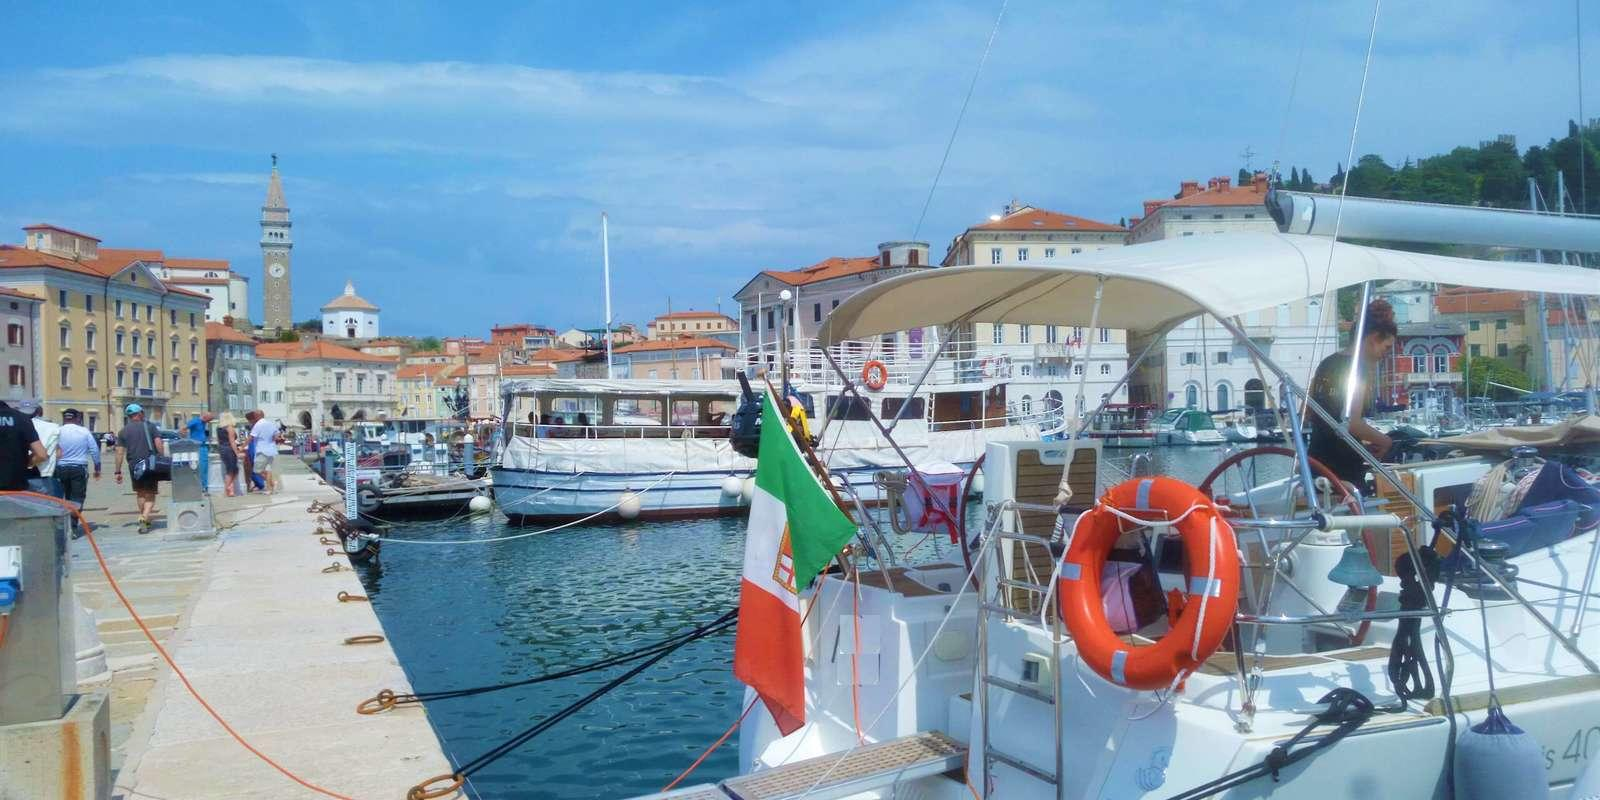 Weekend of sailing and relaxation in Trieste's Gulf